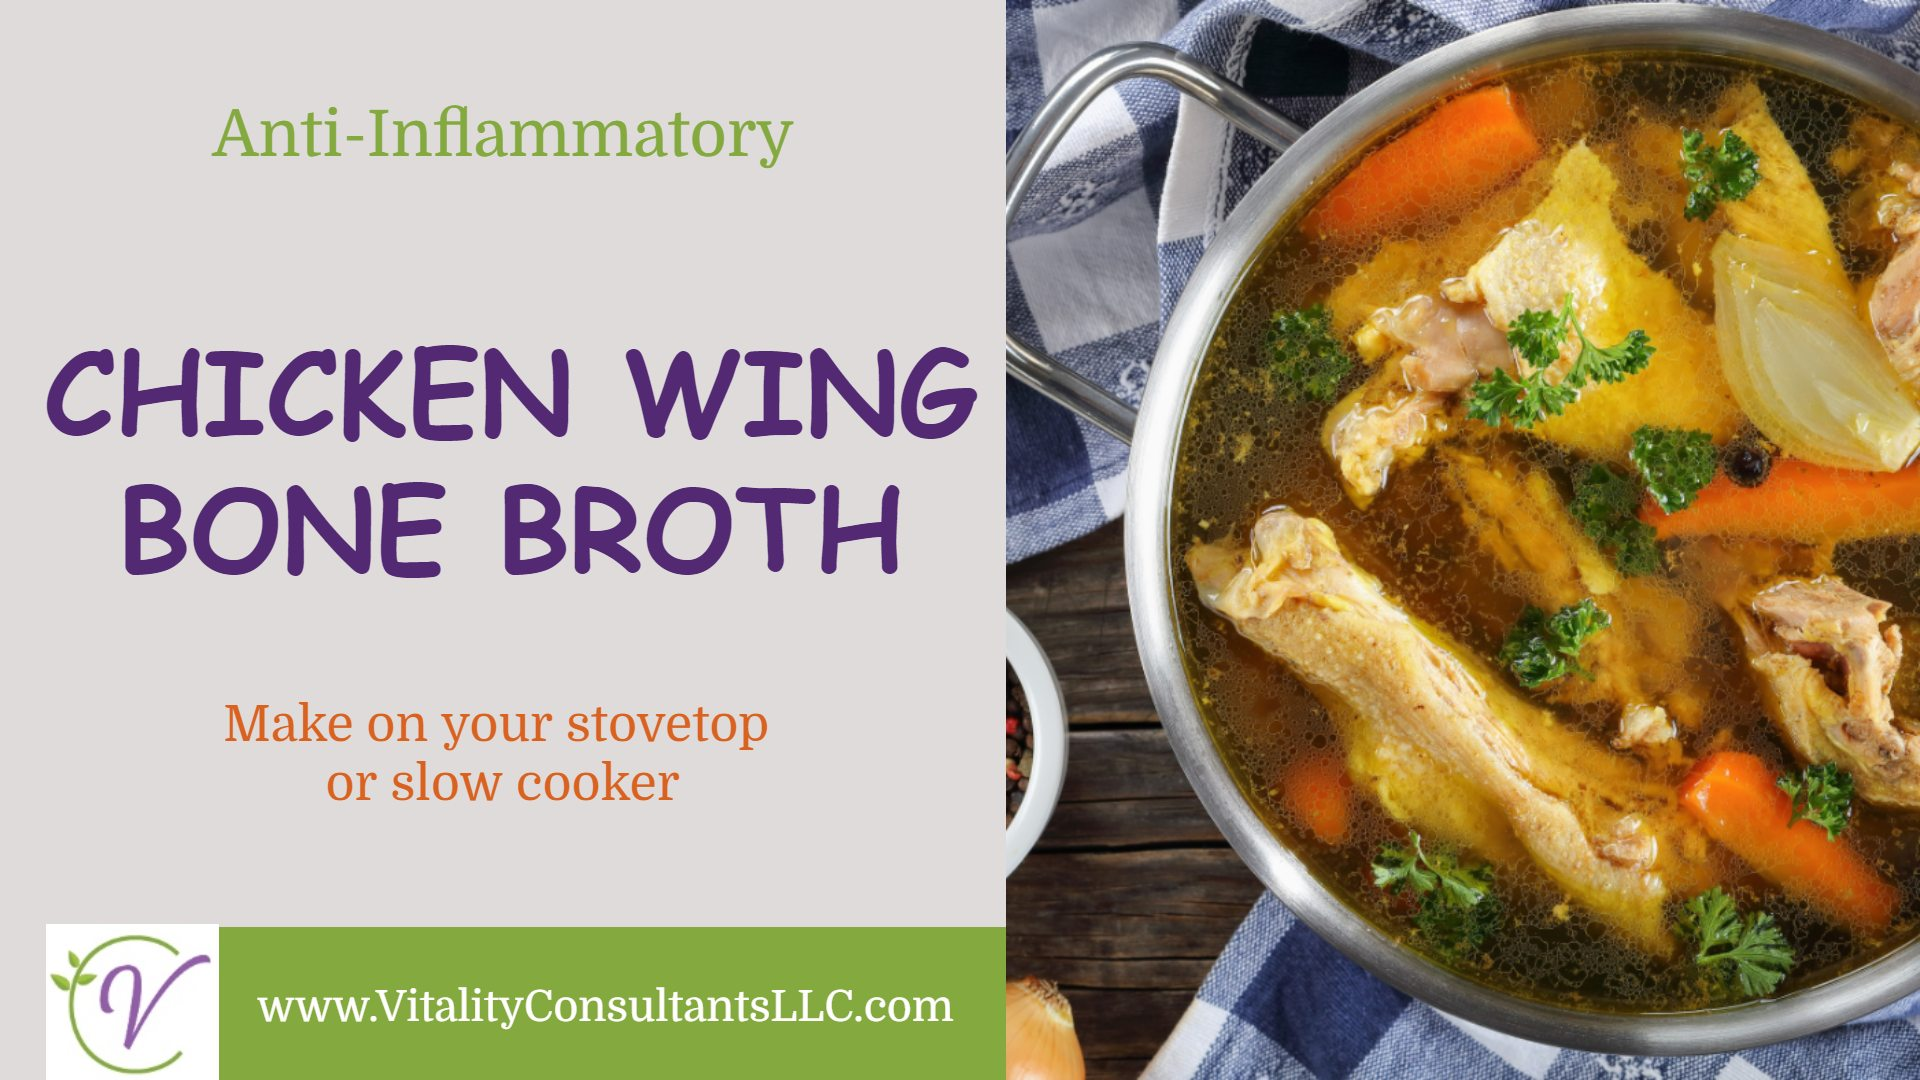 Chicken Wing Bone Broth